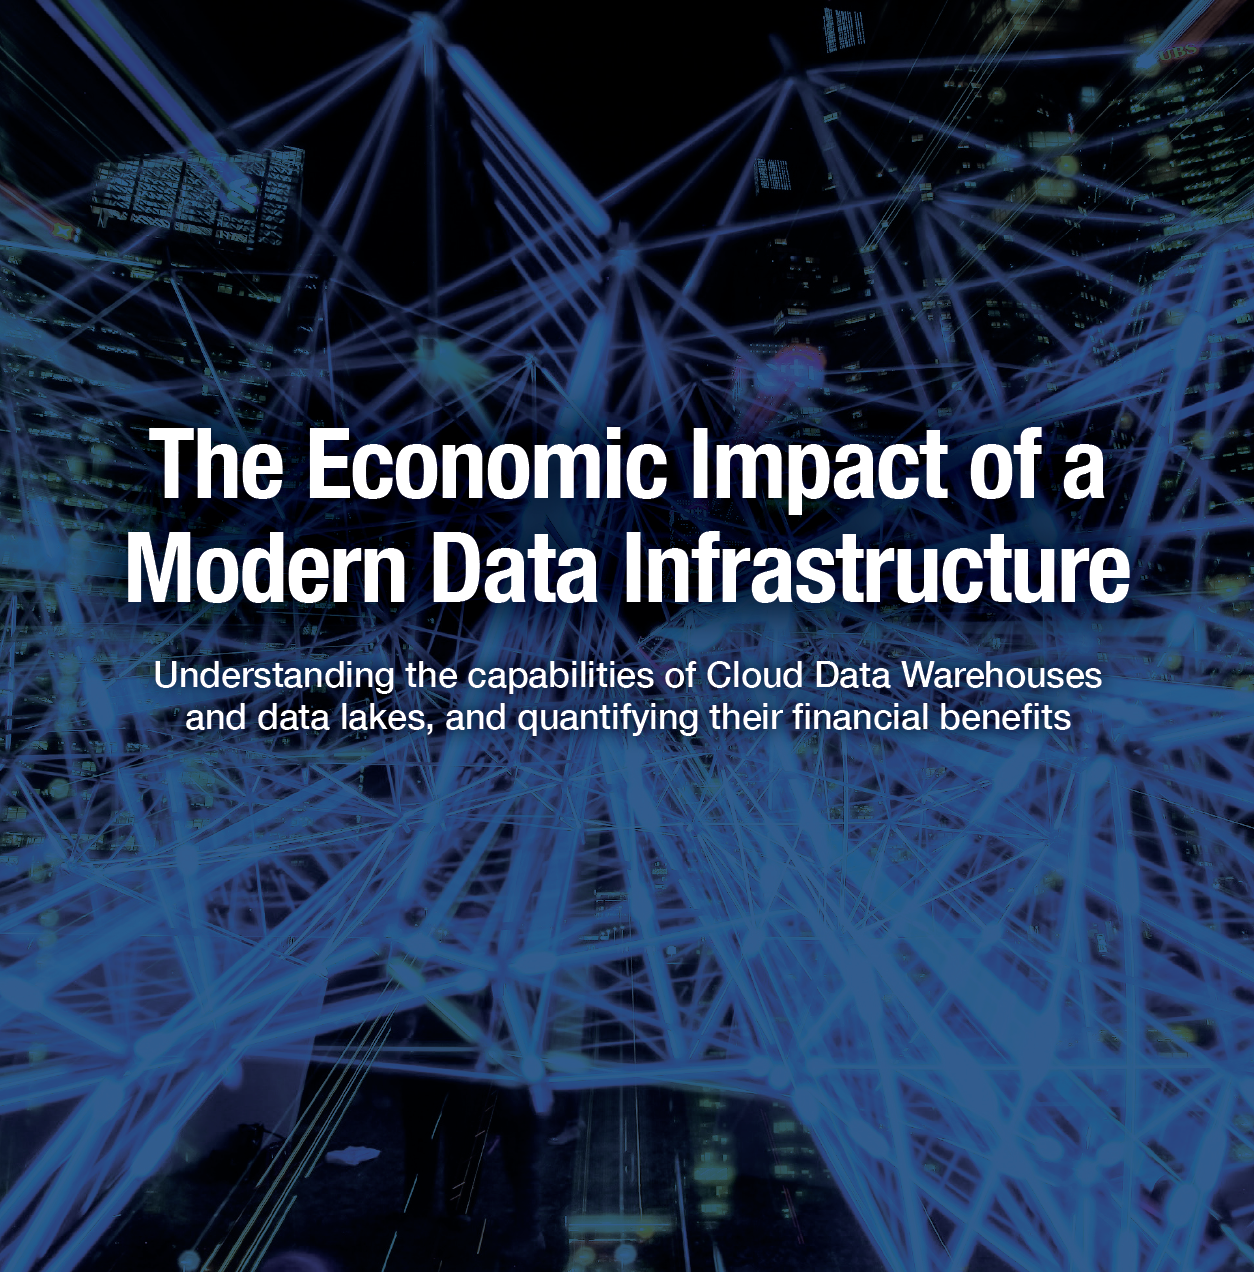 Economic Impact of a Modern Data Infrastructure